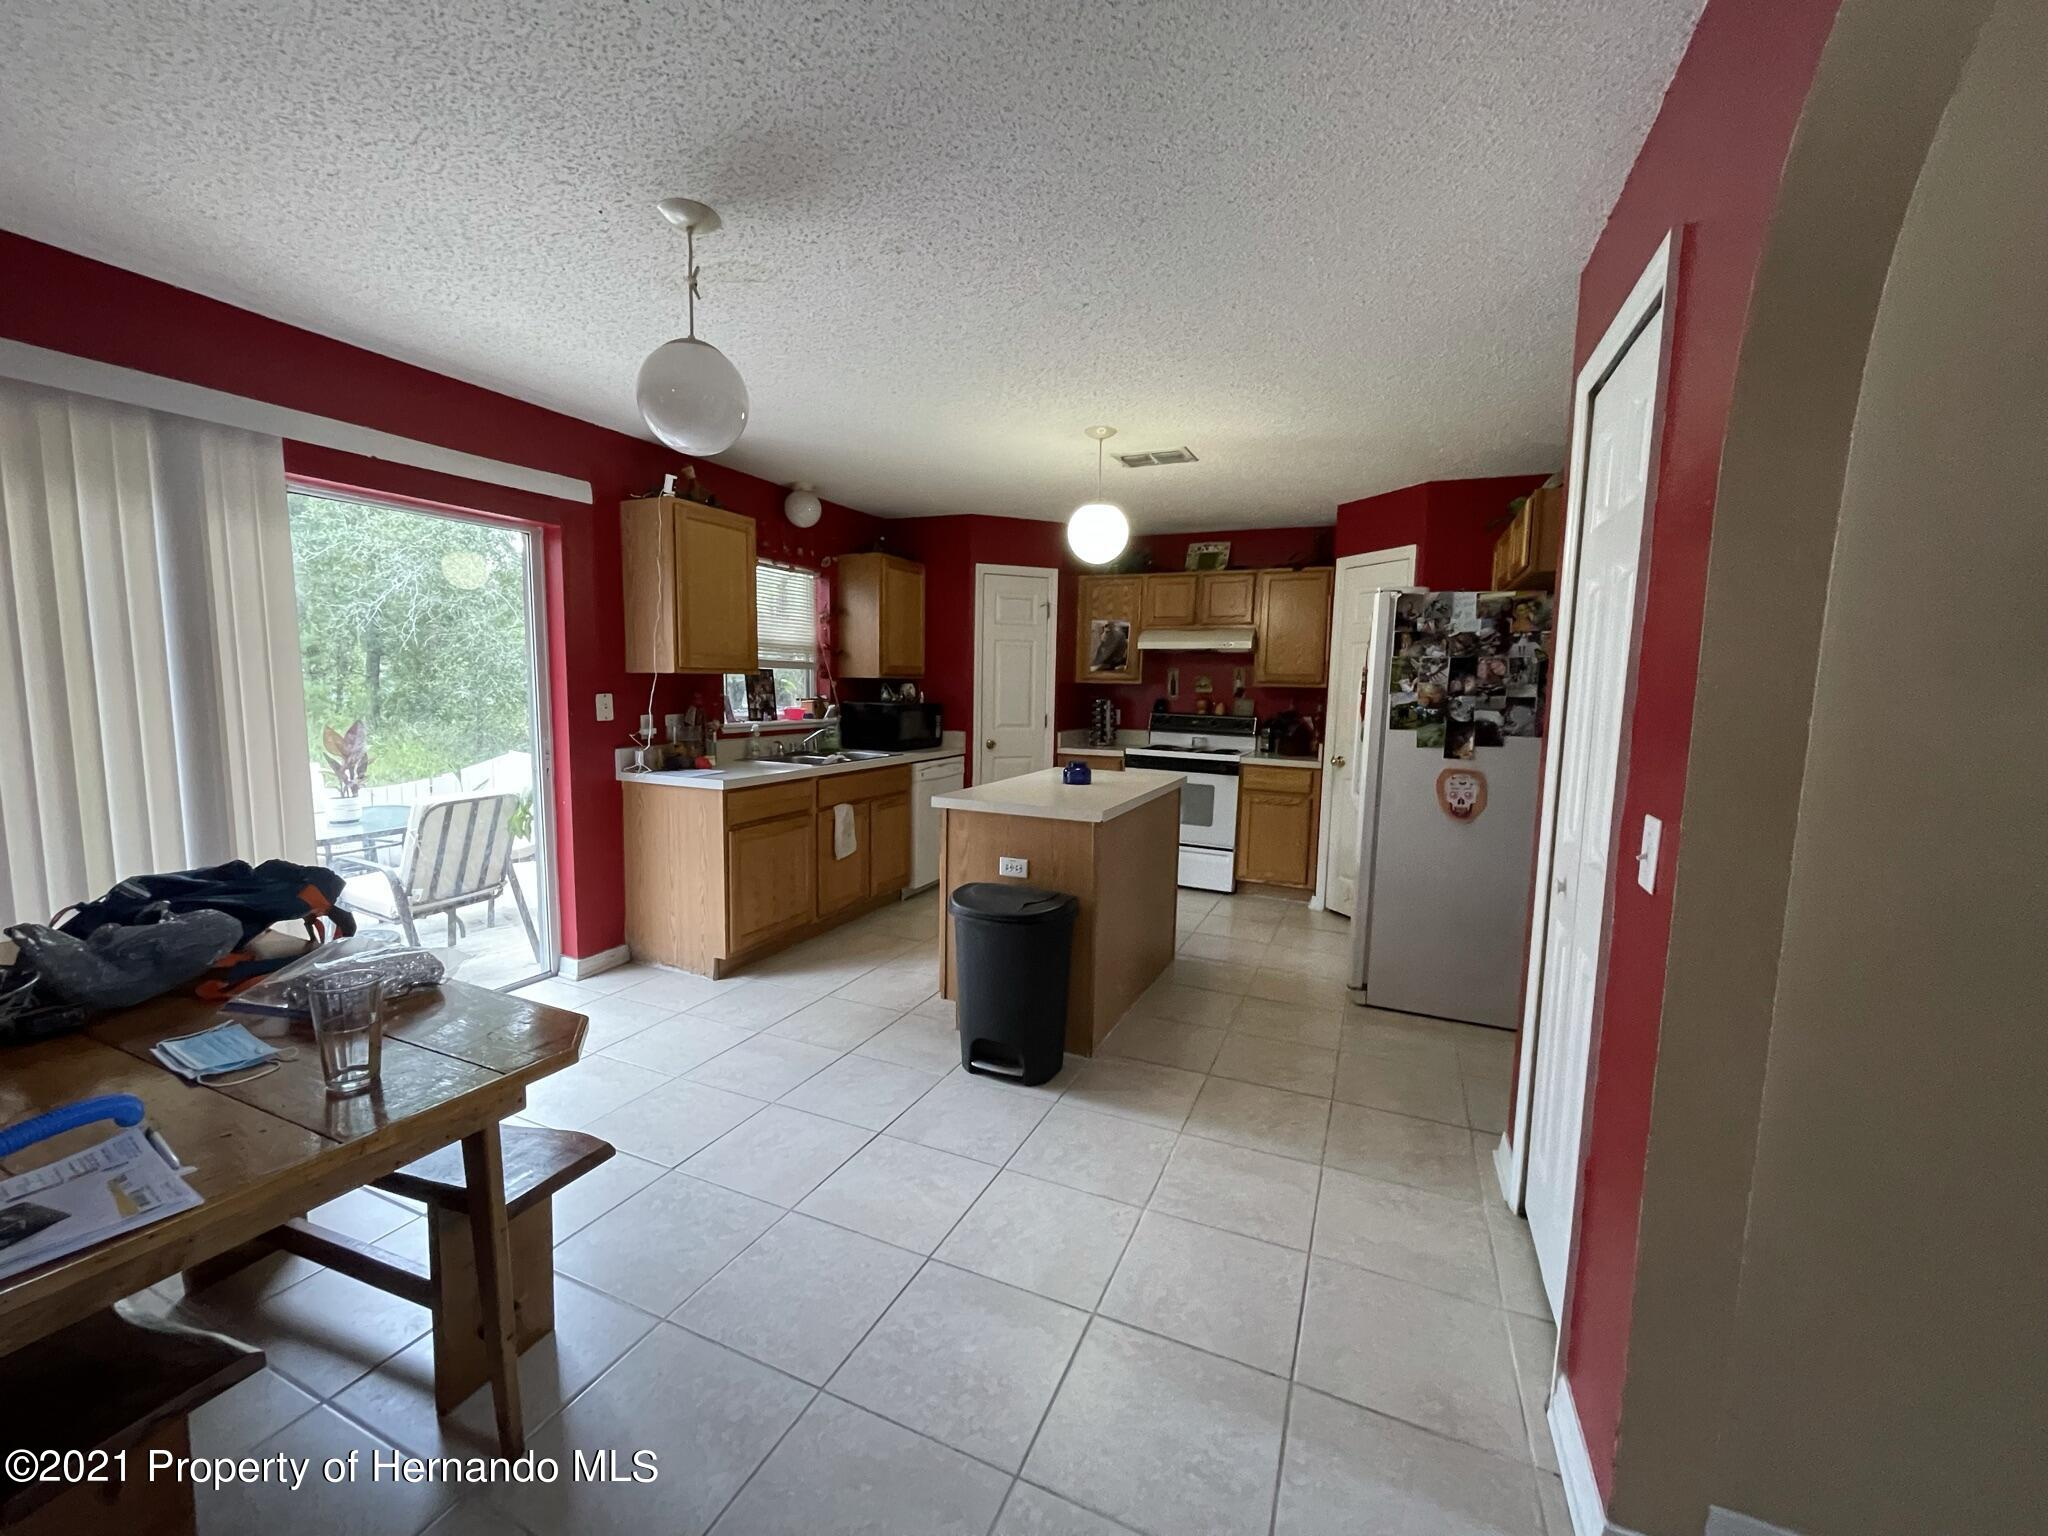 Image 4 of 22 For 12139 Villa Road